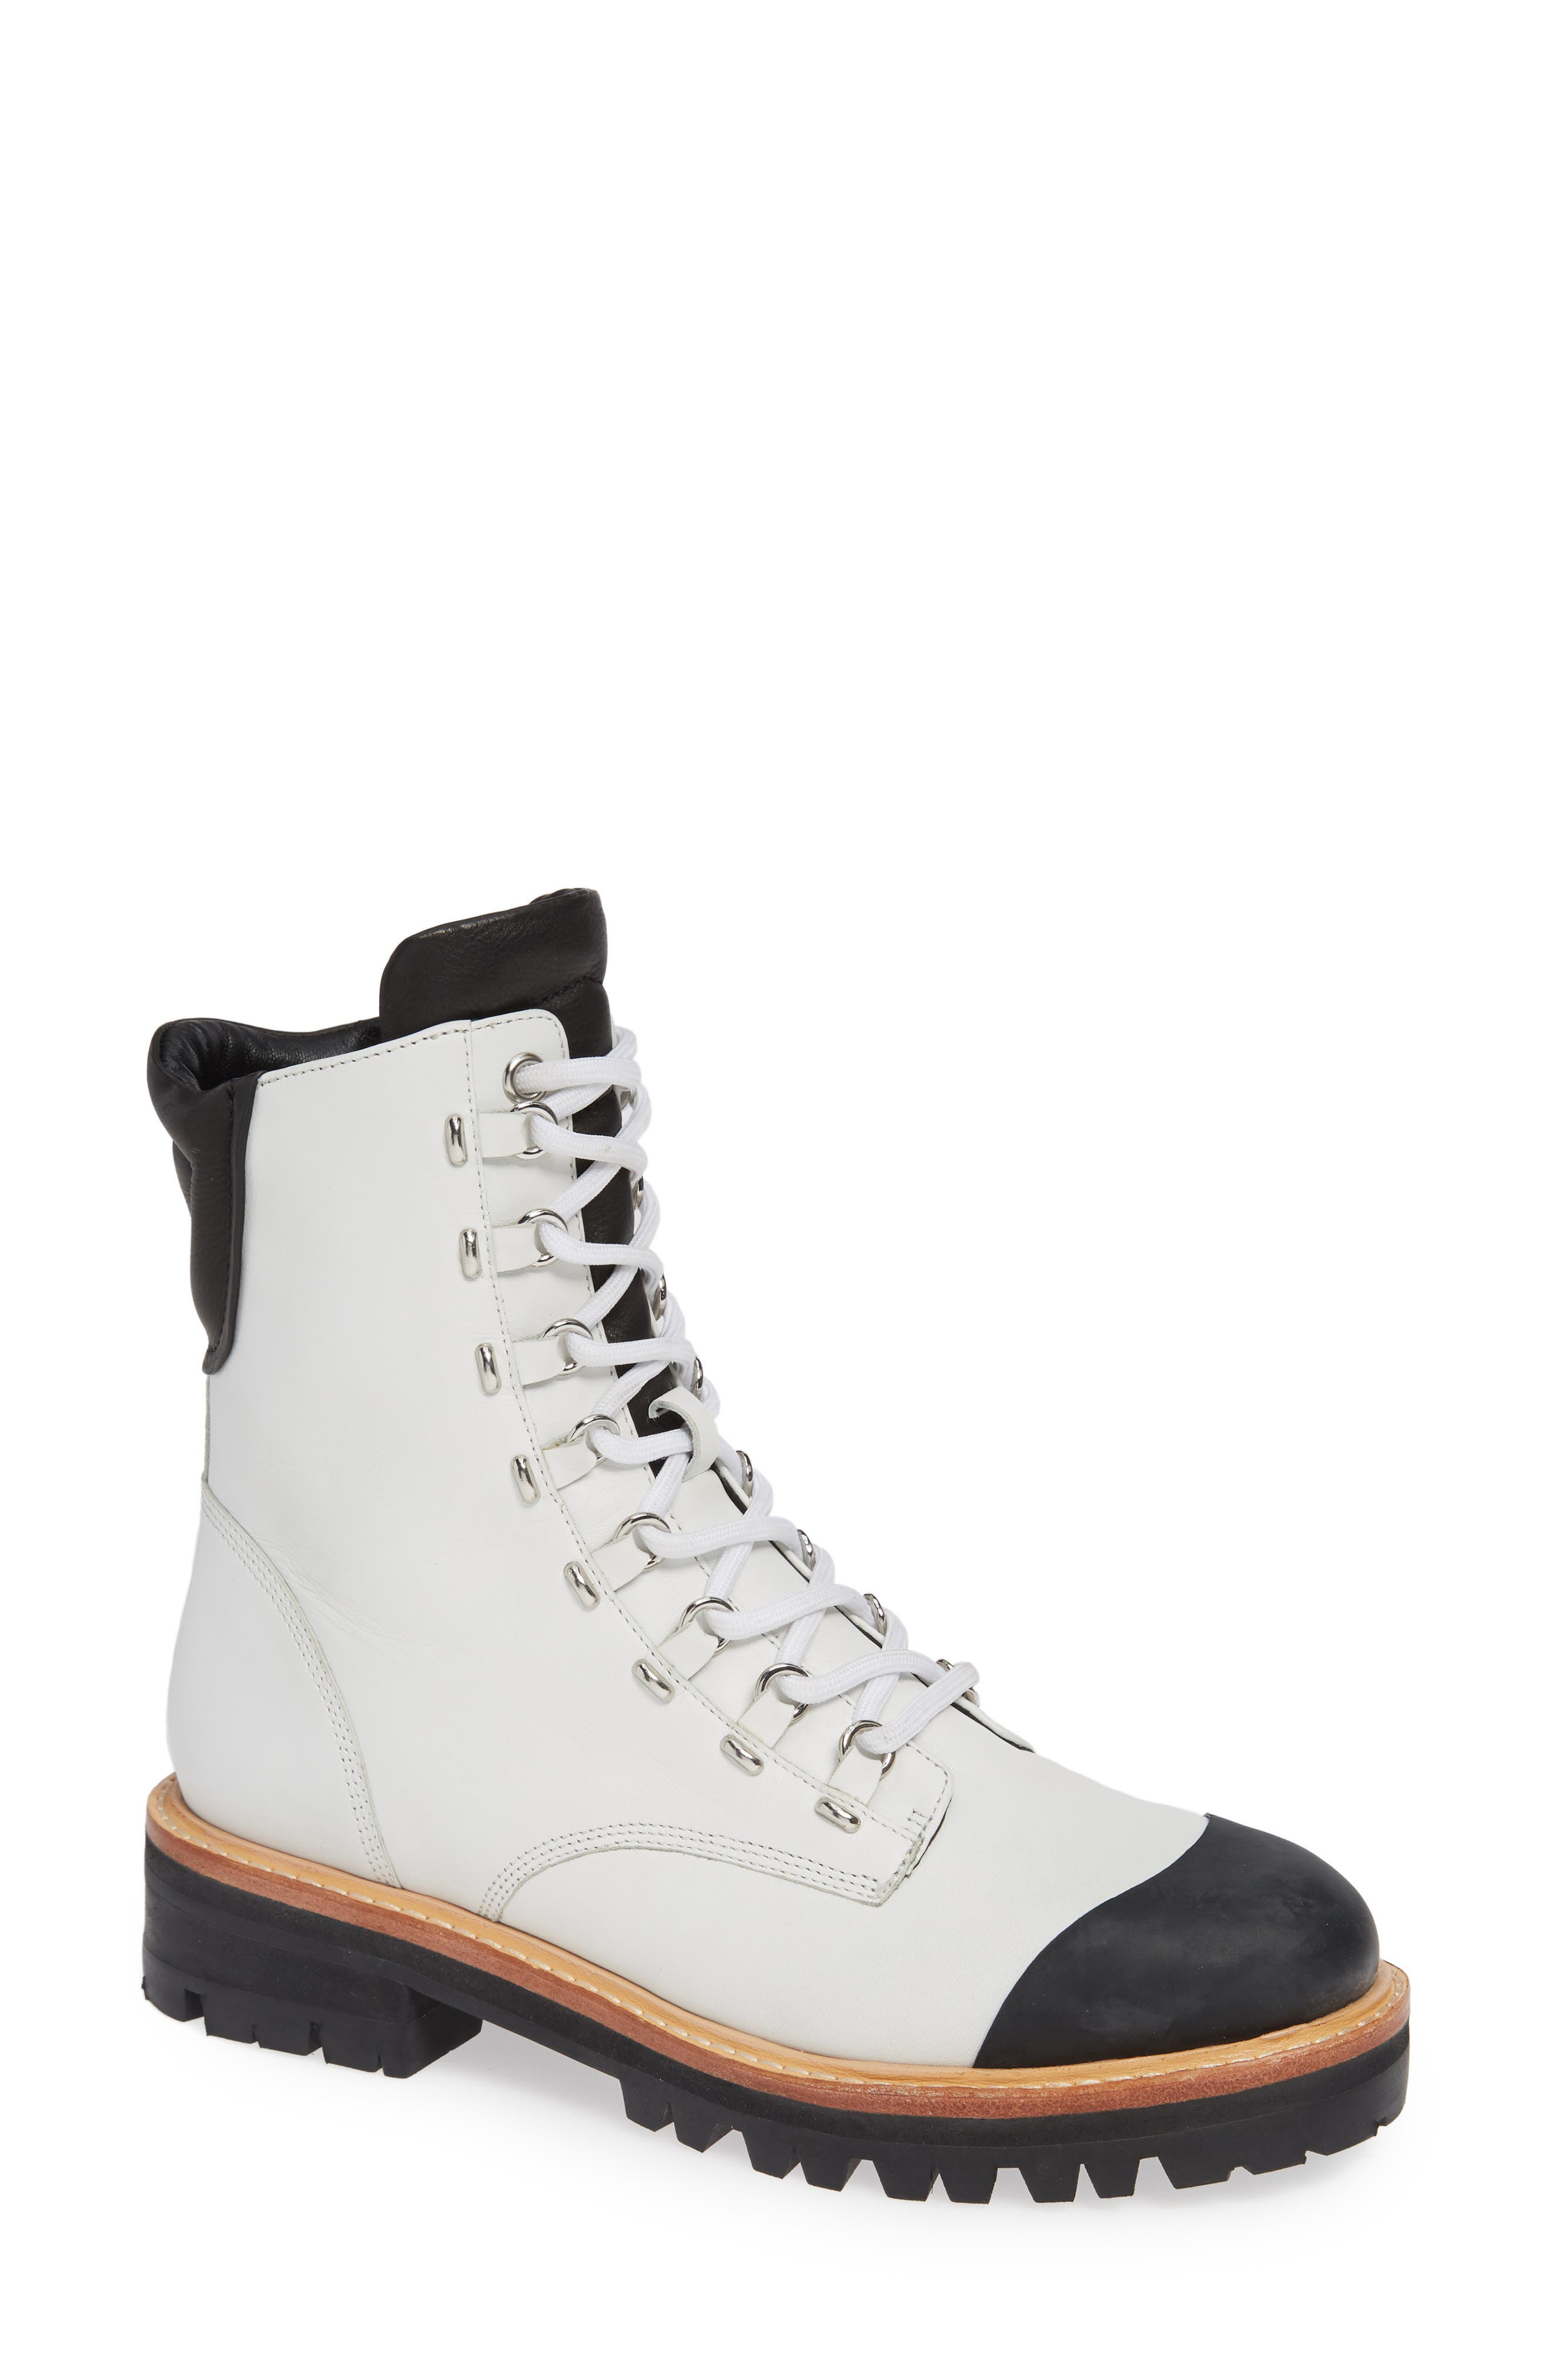 Women'S Irene Round Toe Leather Boots in Bianco/ Black